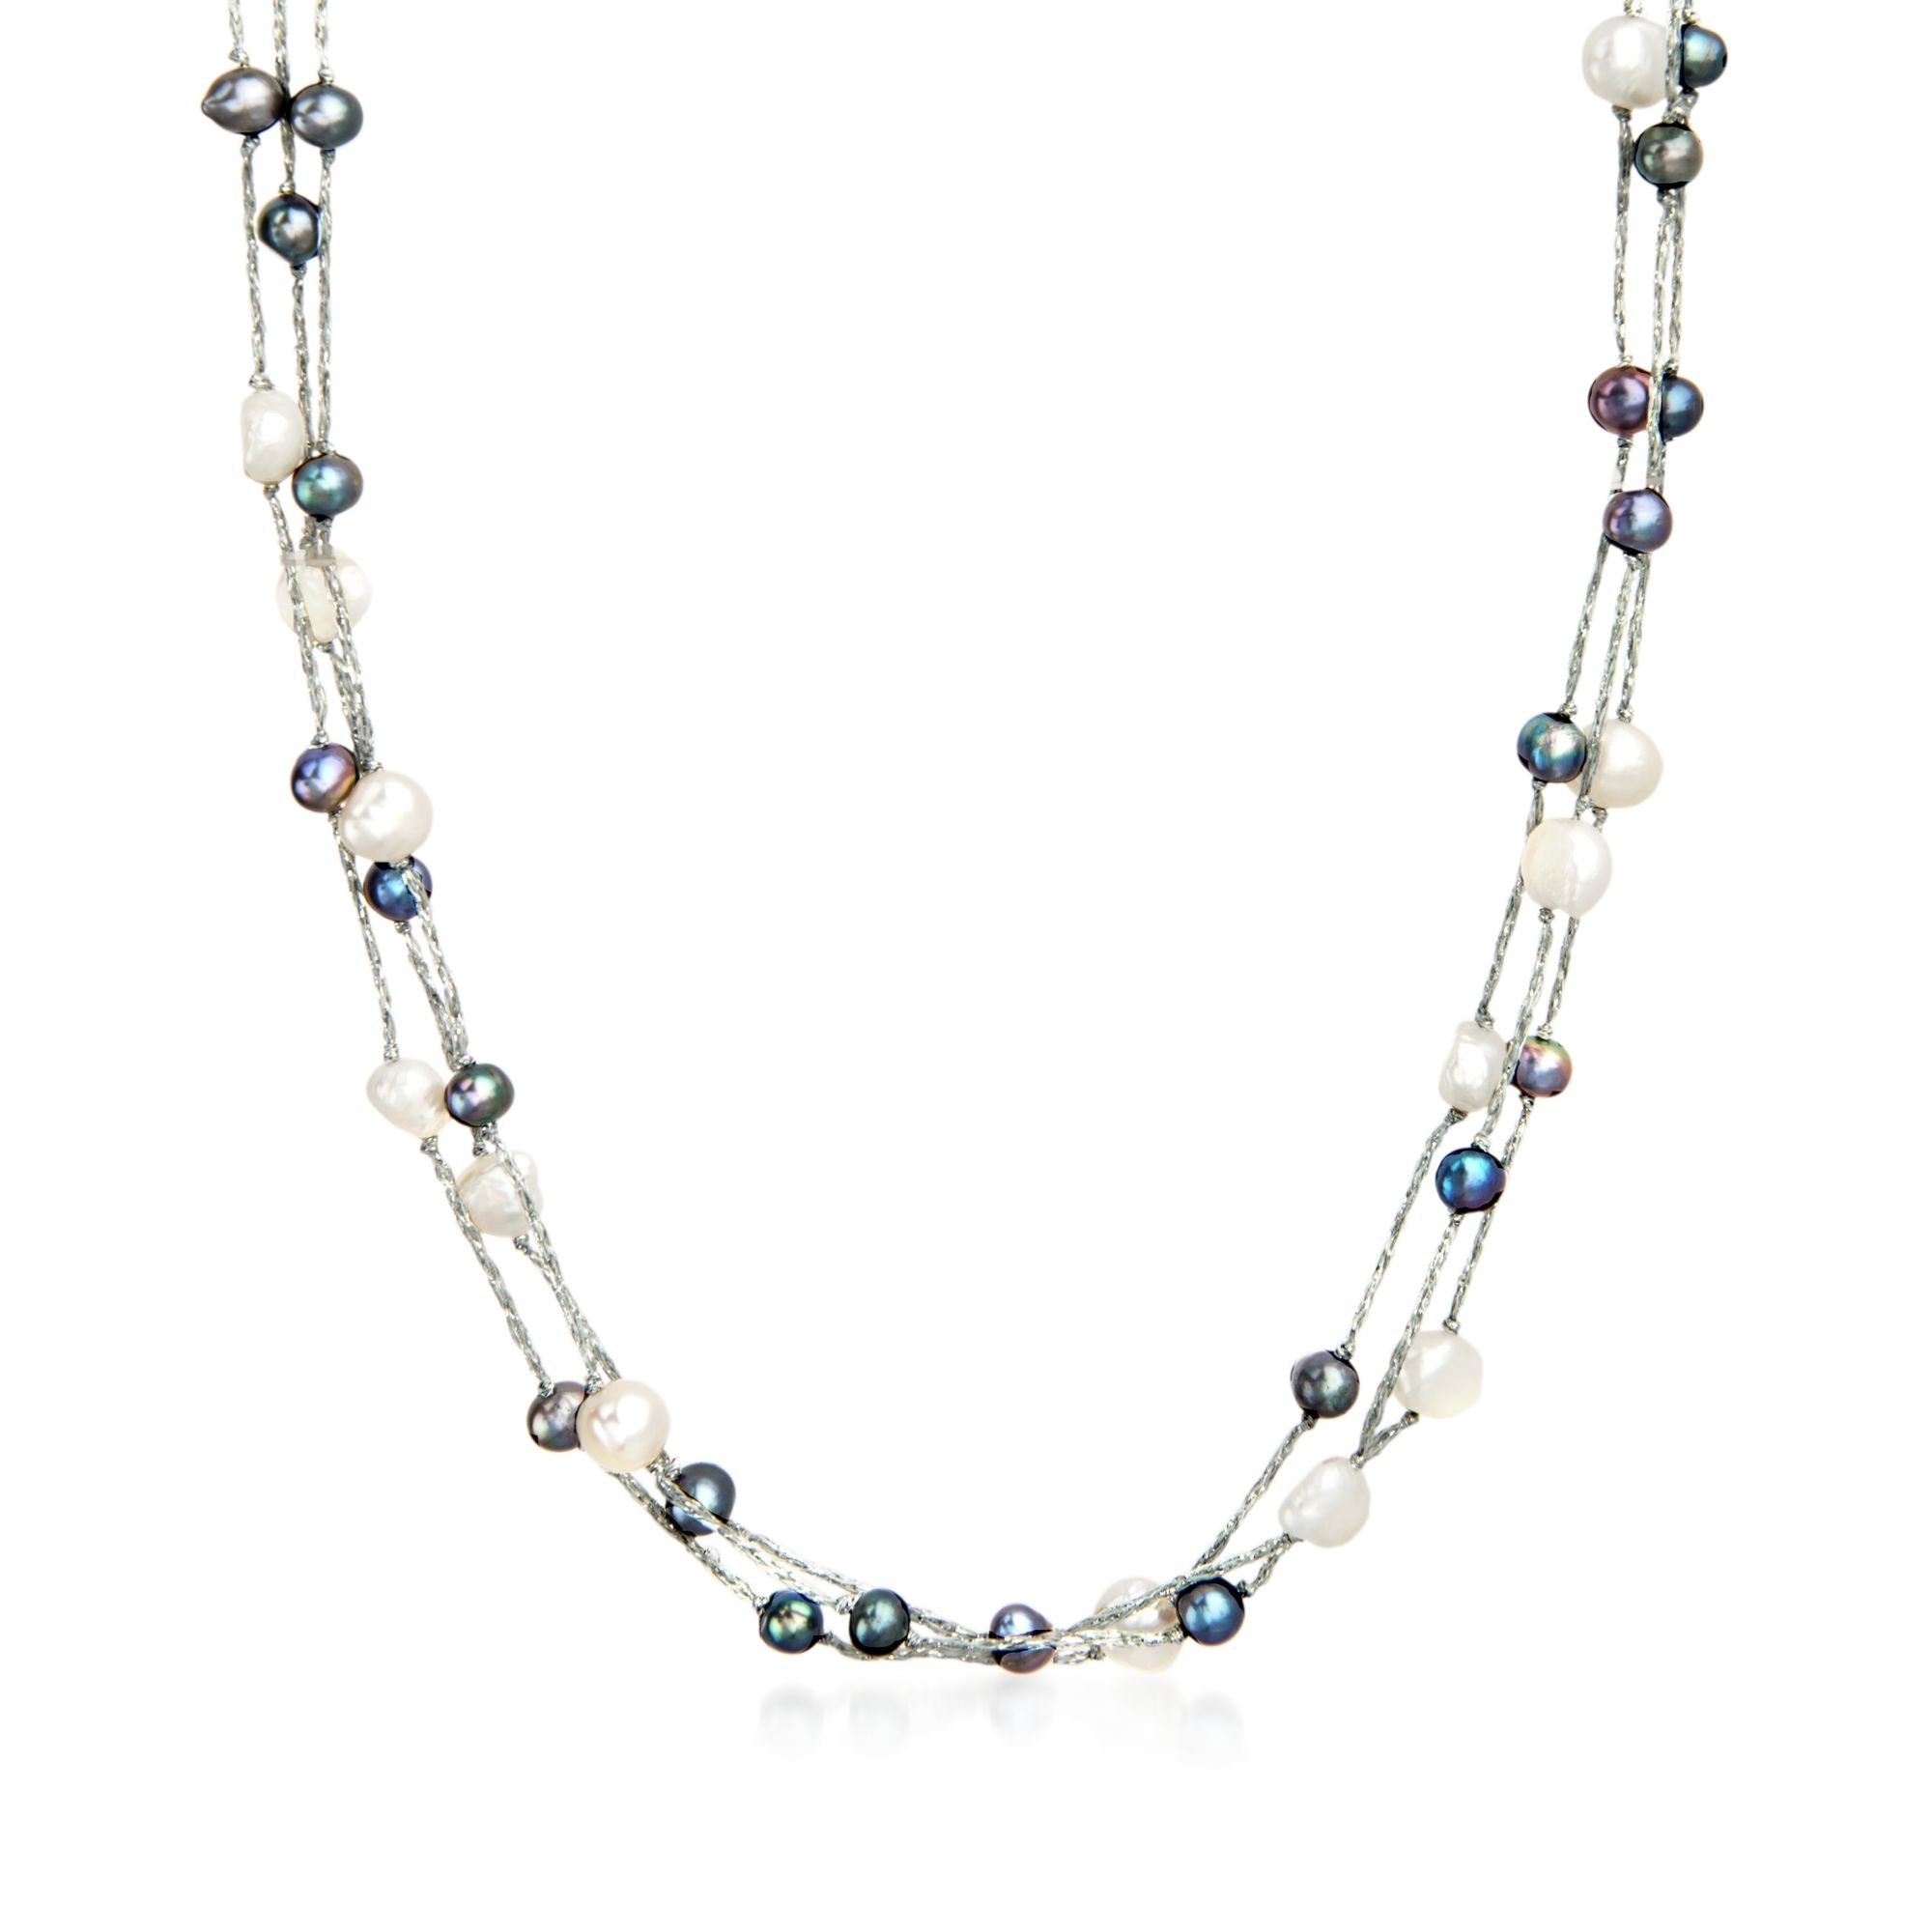 1152806c51a05 Ross-Simons 5-9mm Black and White Cultured Pearl Three-Strand ...